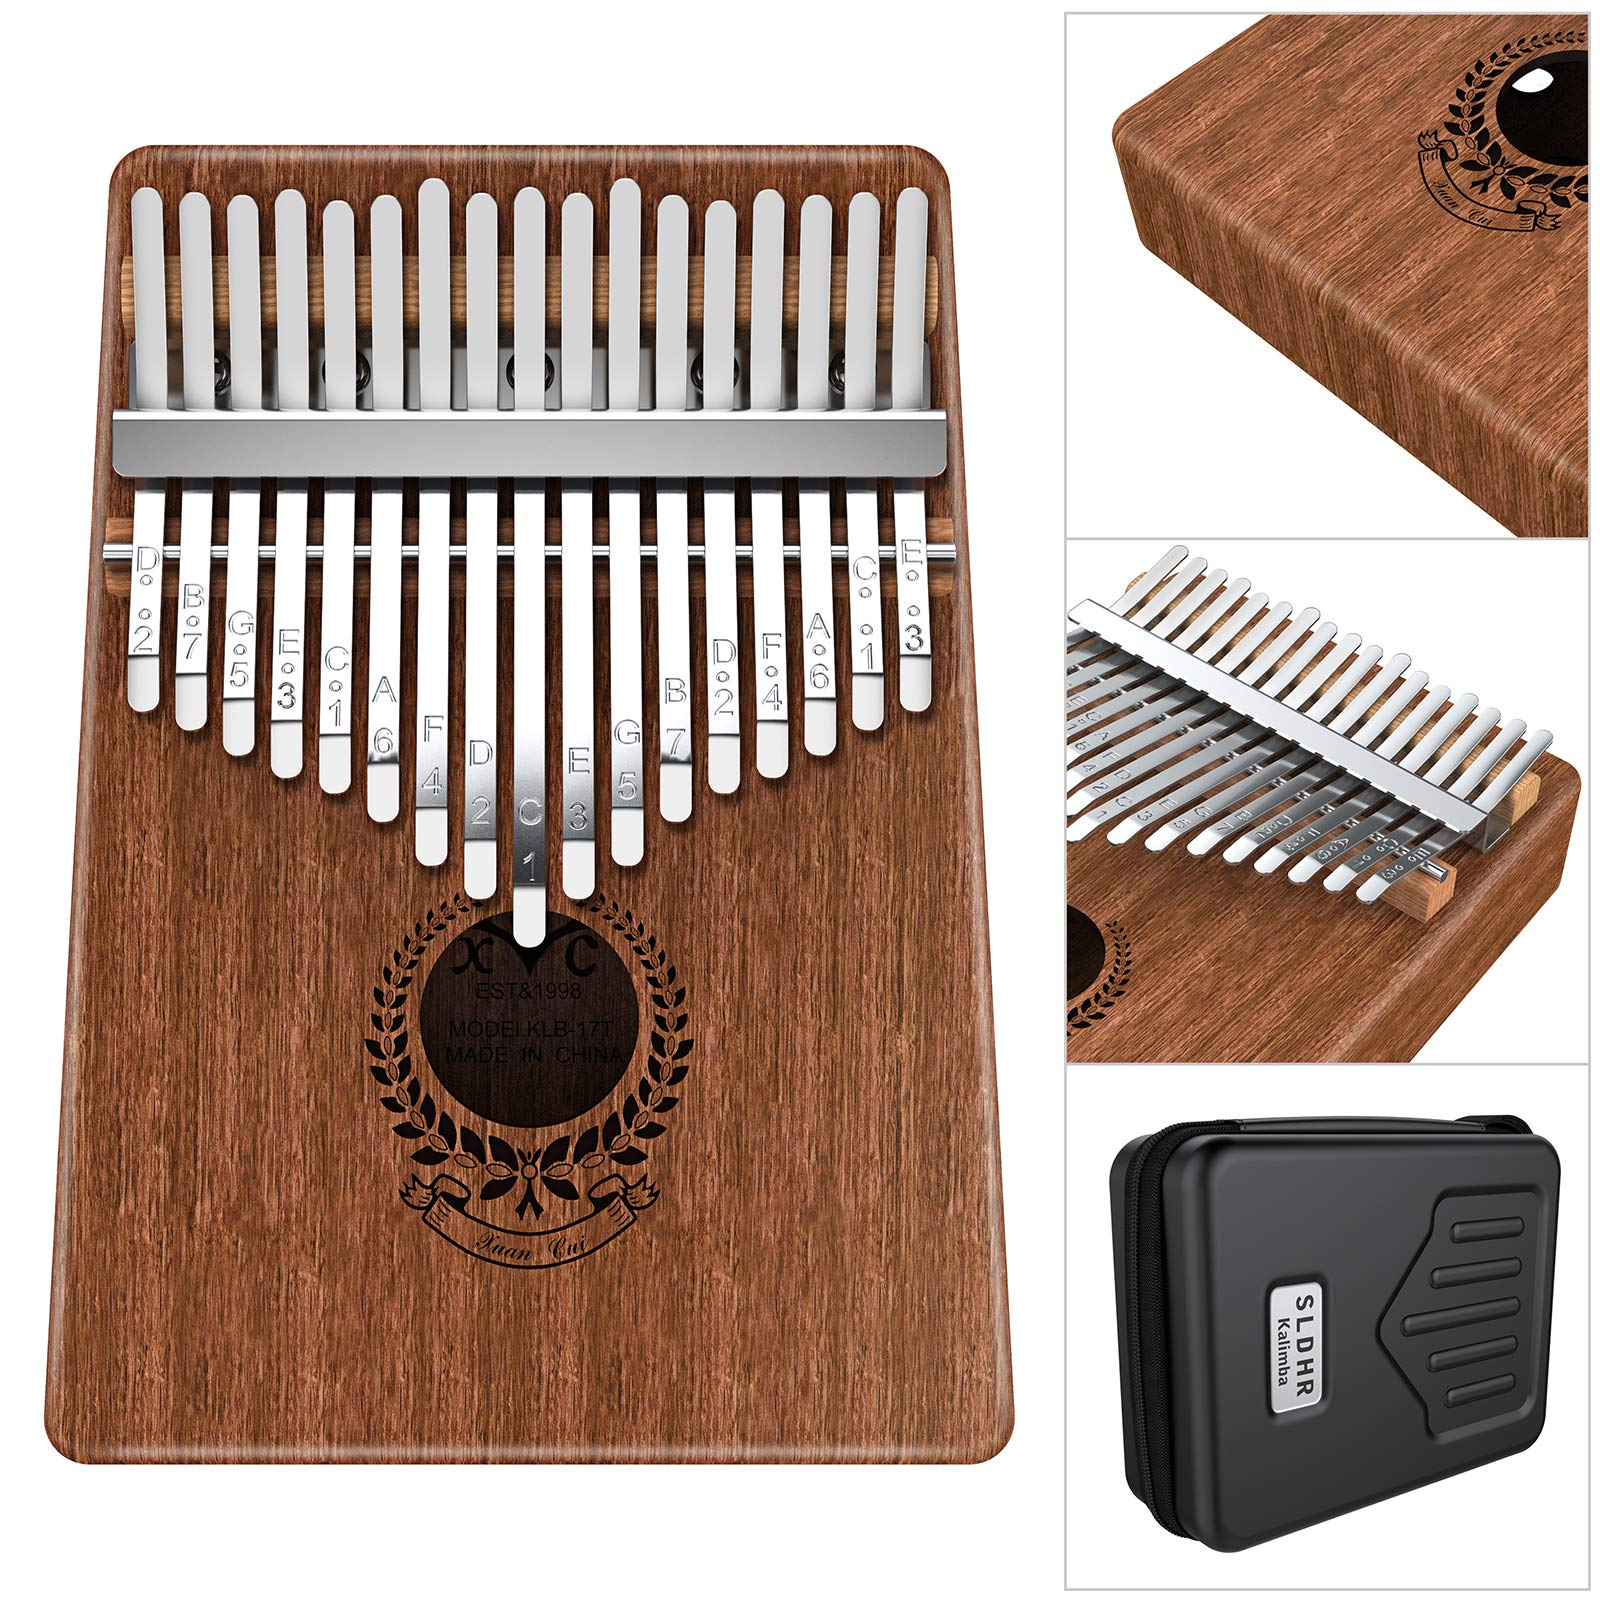 SLDHR Kalimba 17 Keys Thumb Piano Built-in Professional Kalimba Bag,Study Instruction and Tune Hammer, Unique Gift for Kids Adult Beginners, Professionals.